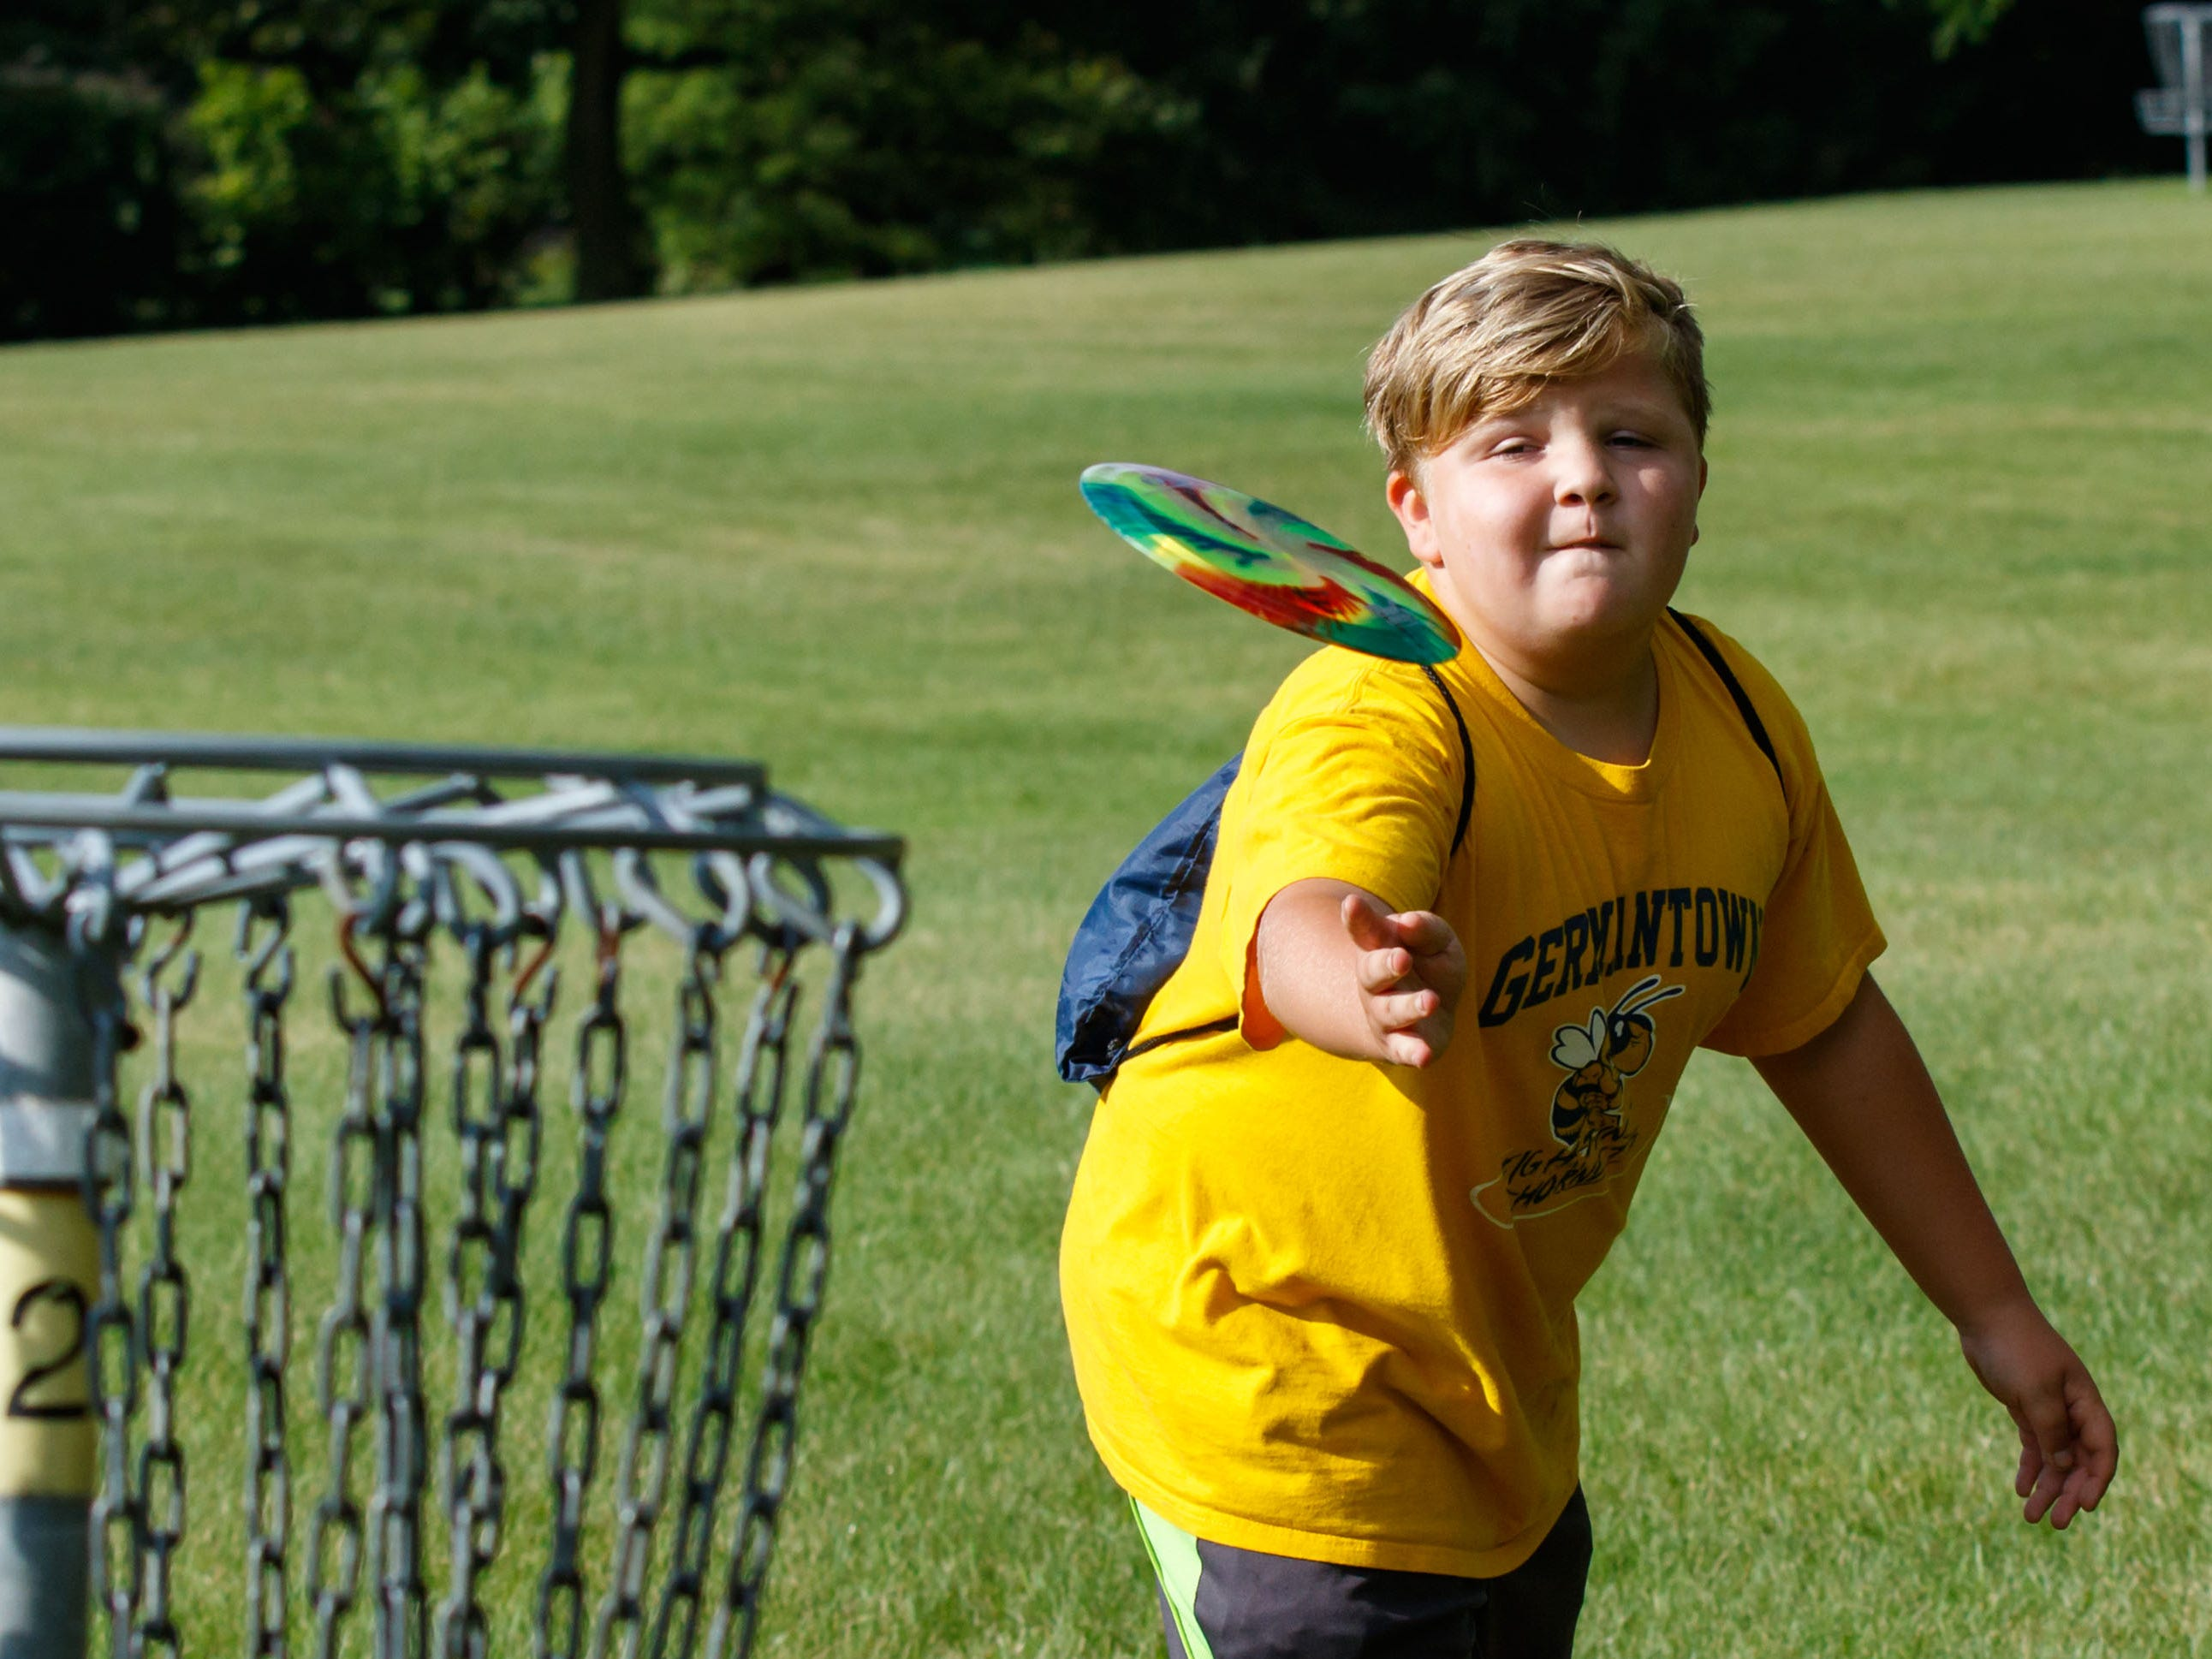 Evan Schmitt, 11, of Germantown, plays a round of disc golf during the Disc Golf Extravaganza event hosted by the Germantown Park & Recreation Department at Spassland Park in on Wednesday, August 1, 2018. The free event featured demonstrations and tips by professional disc golfers, games, concessions and more.